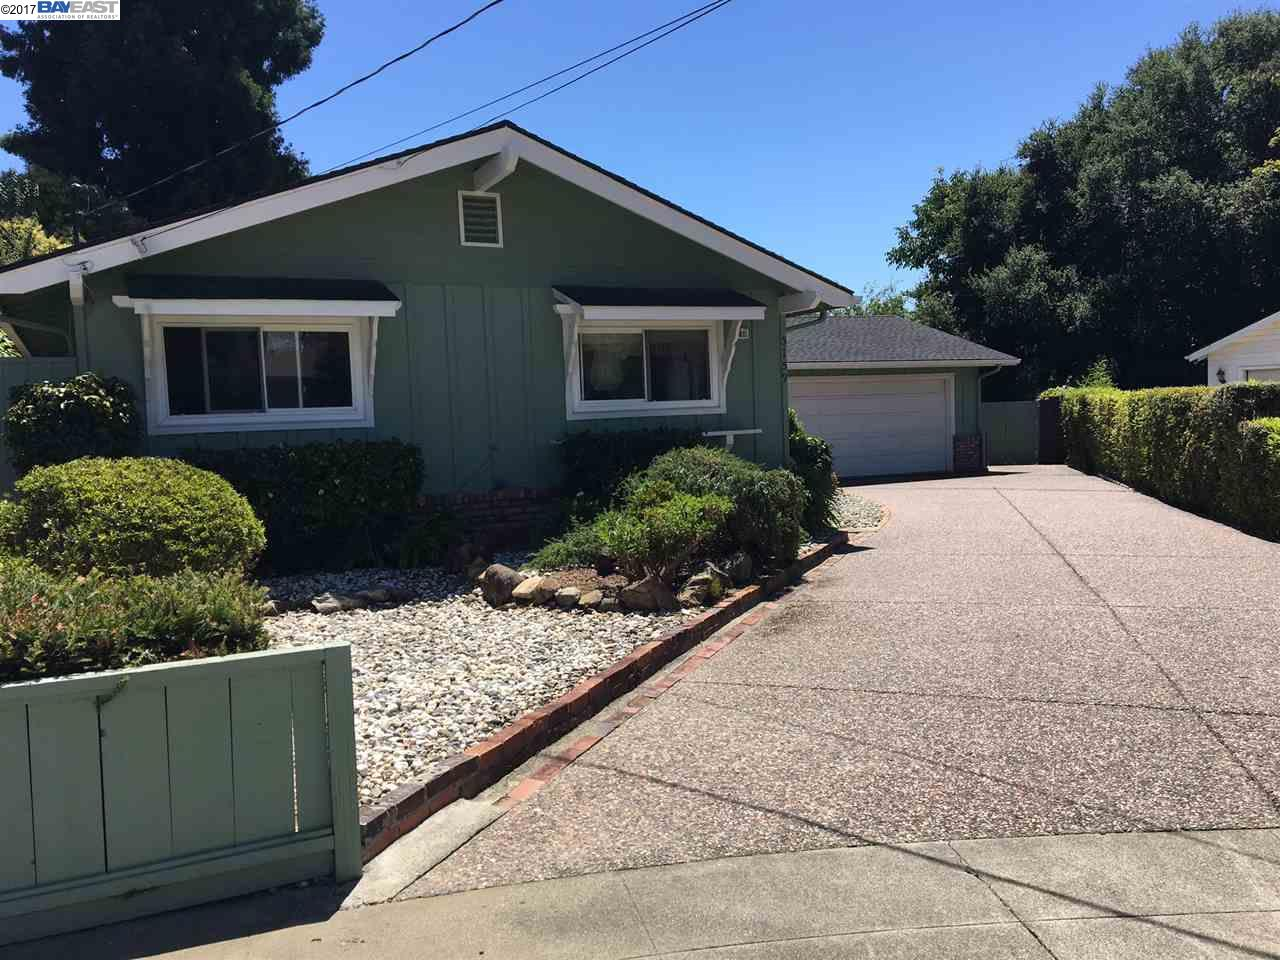 Single Family Home for Sale at 5159 Cunningham Court Castro Valley, California 94546 United States